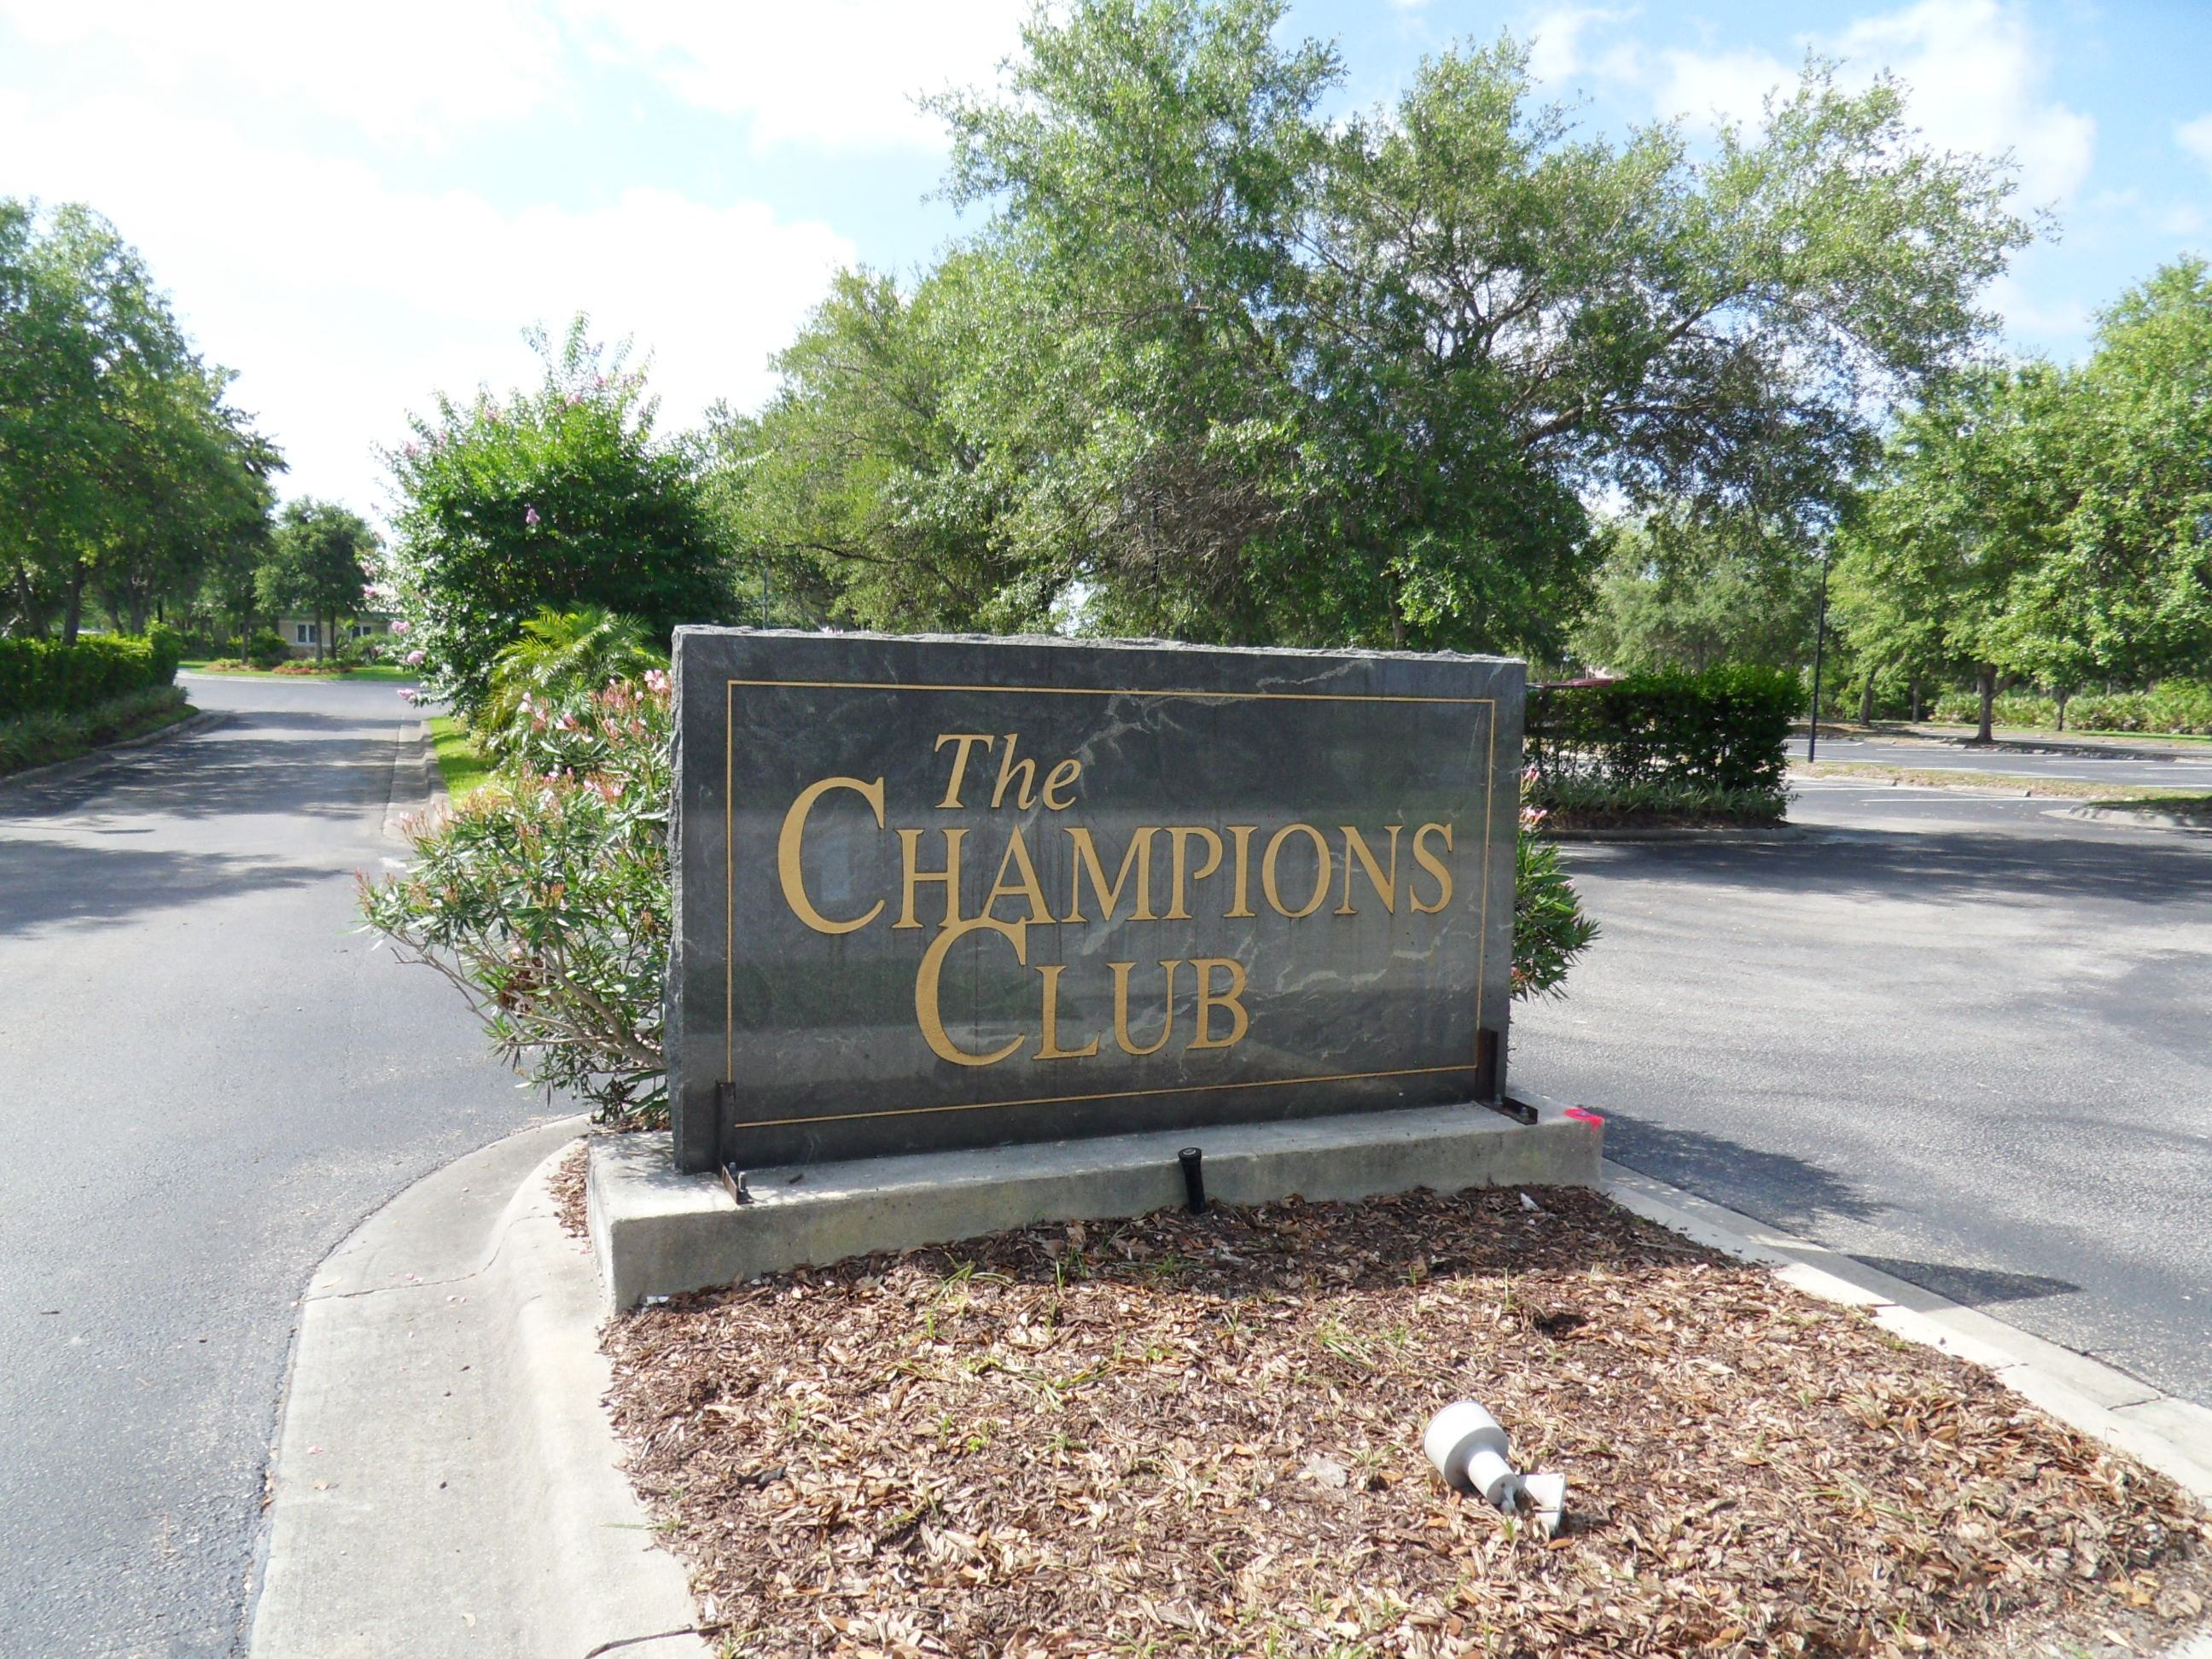 the Champions Club at Summerfield